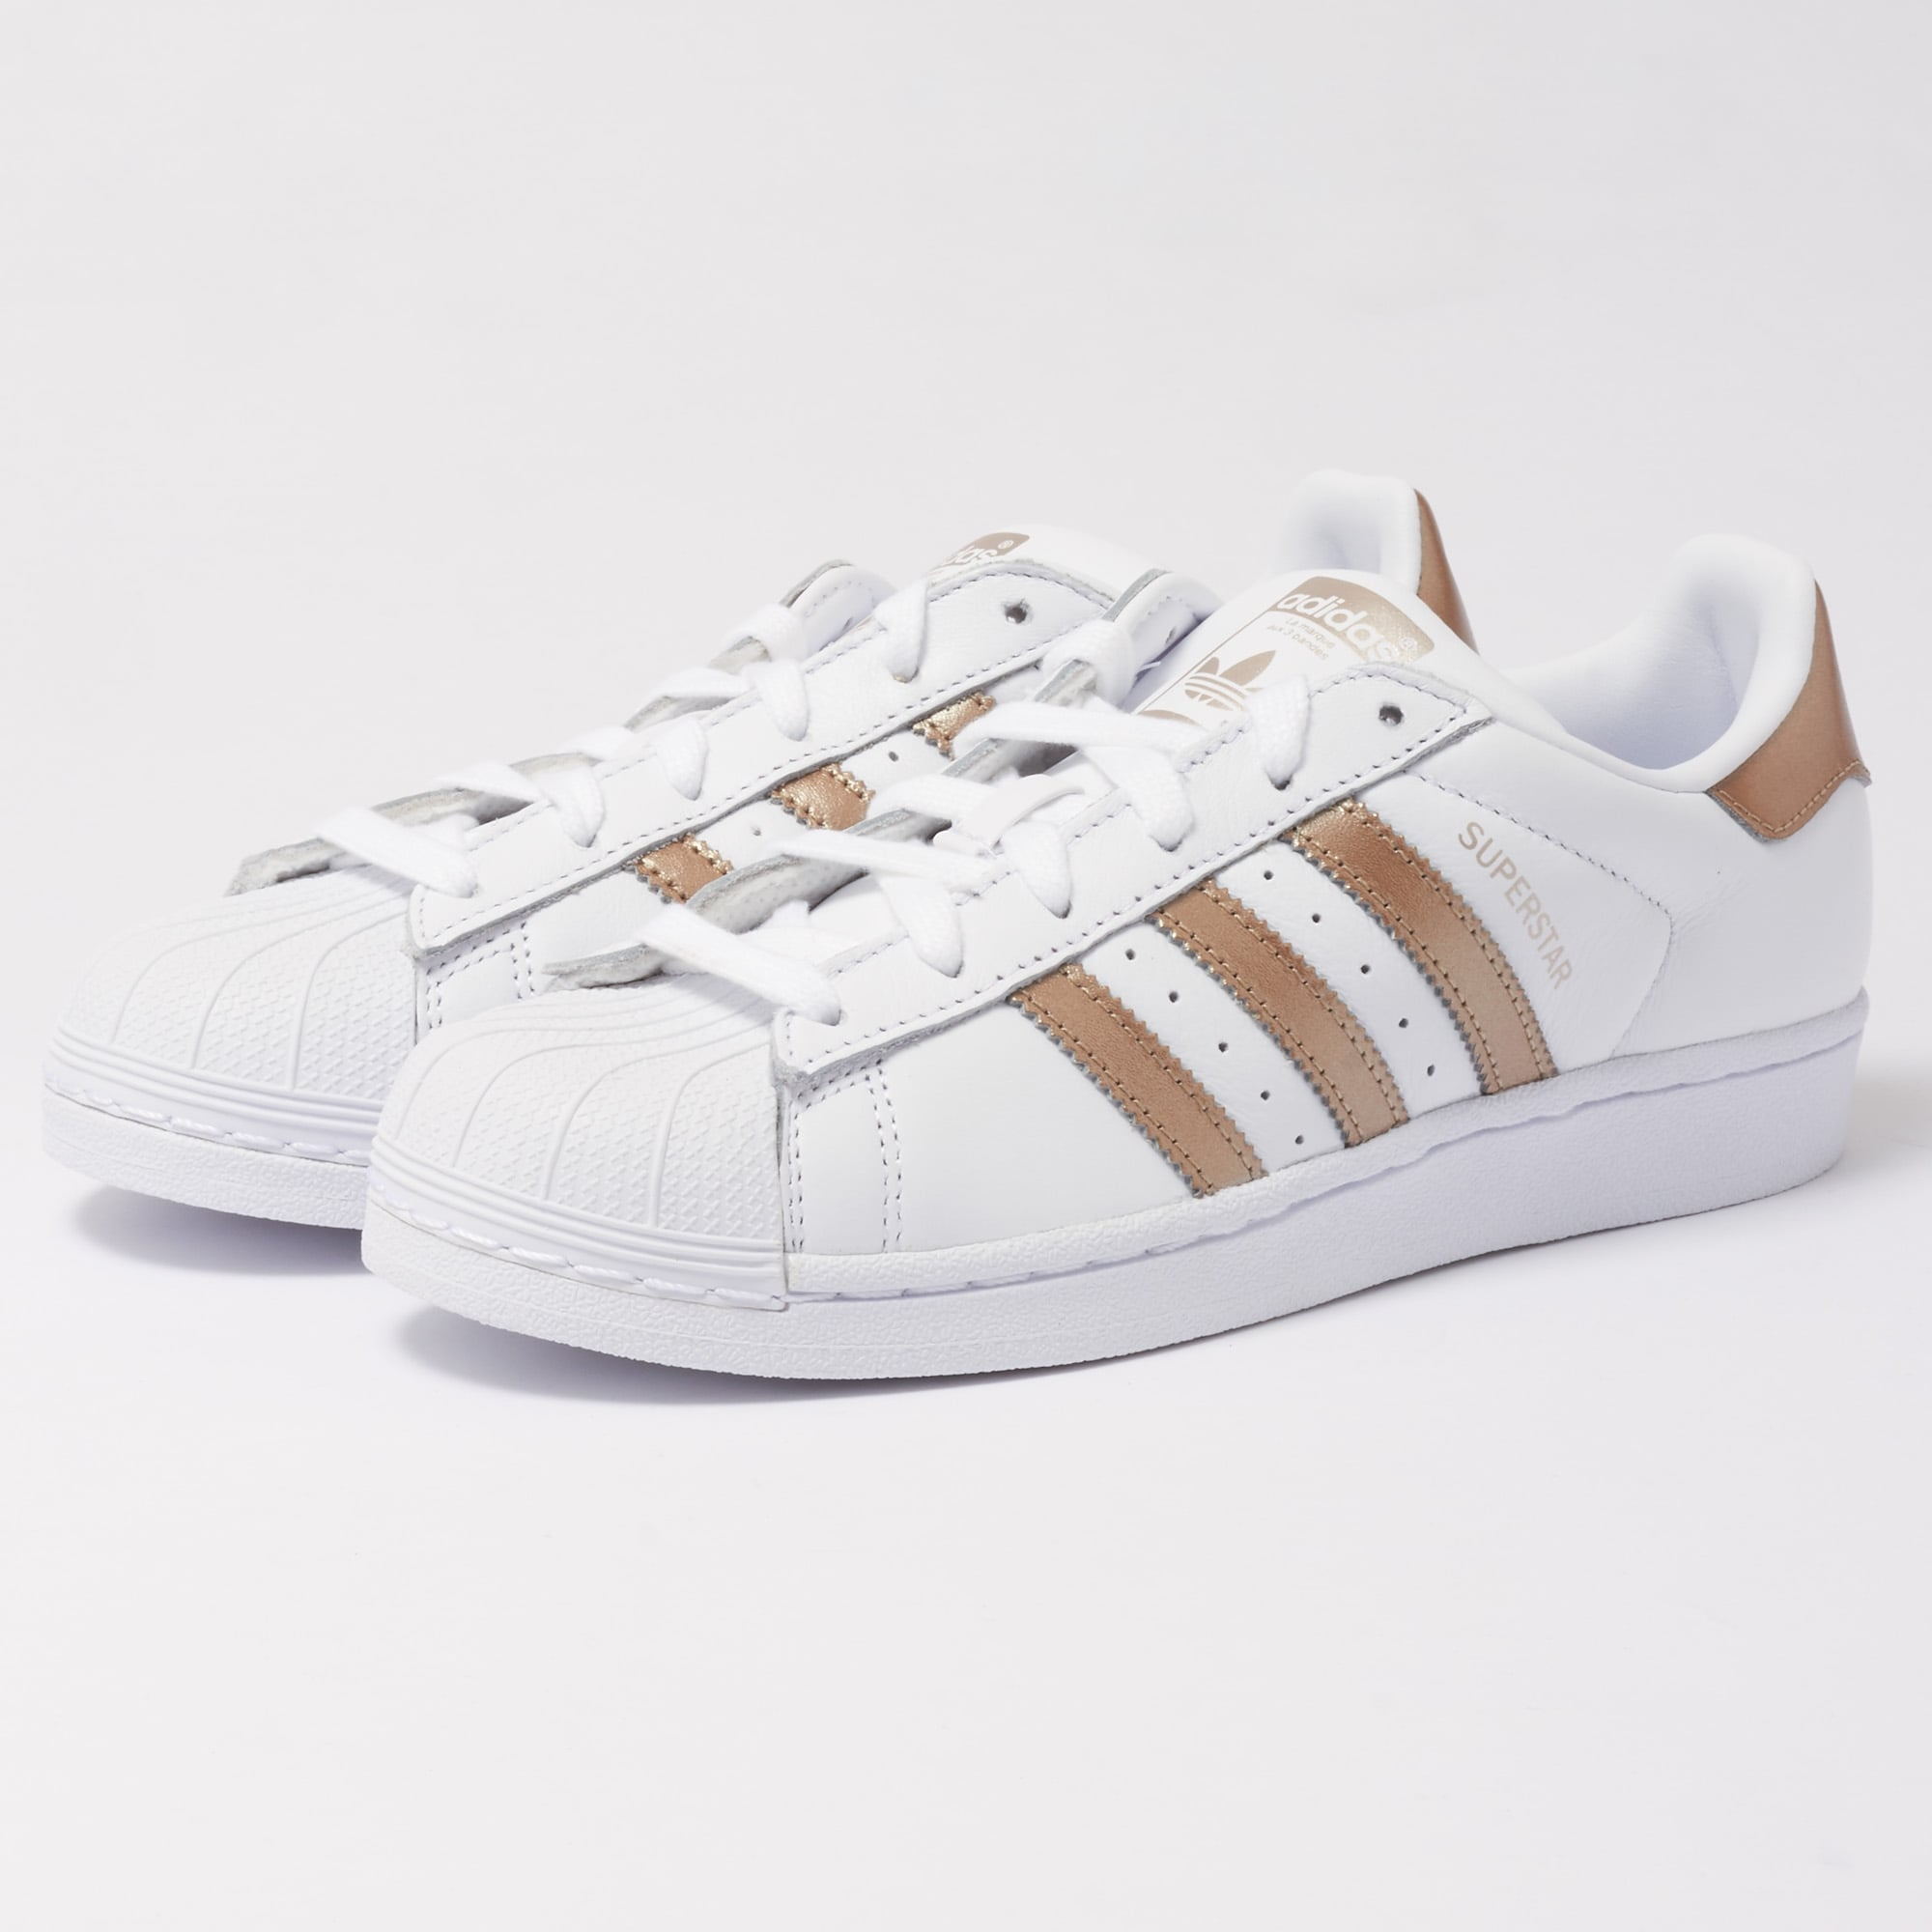 9a4868e7a6e6 Adidas Originals Womens Superstar Trainers